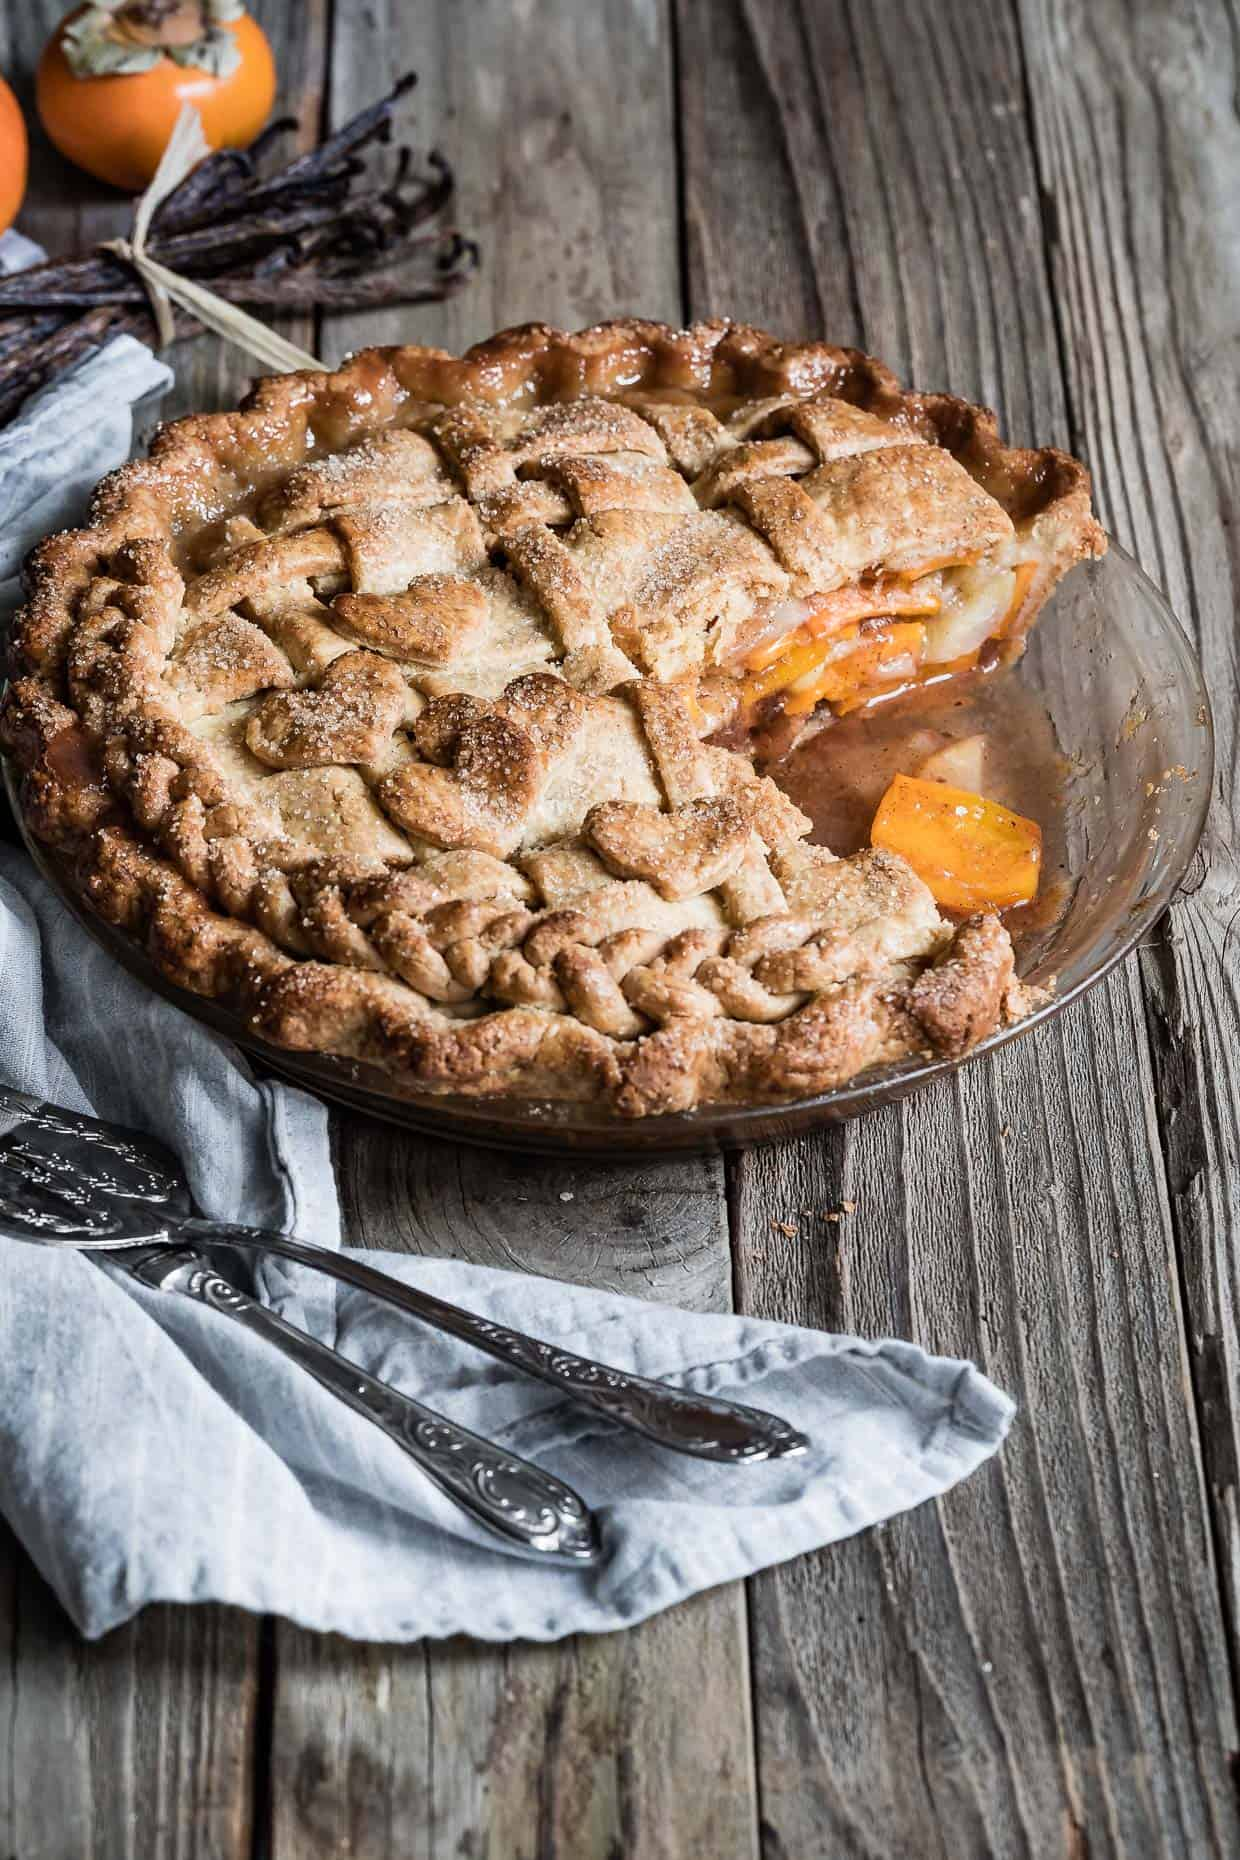 Pear and Fuyu Persimmon Pie with Gluten-Free Pie Crust